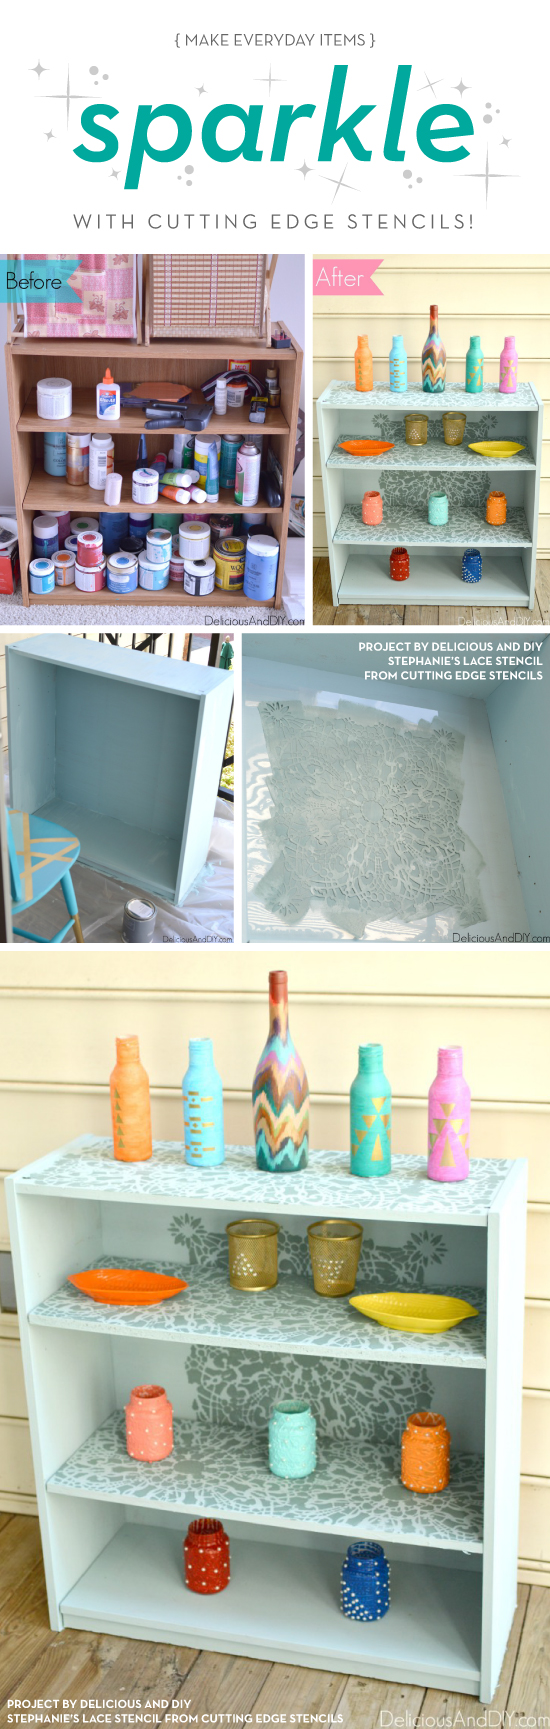 Cutting Edge Stencils shares a DIY stenicled bookcase using the Stephanies Lace Stencil. http://www.cuttingedgestencils.com/lace-stencil-wall-decor-stencils.html